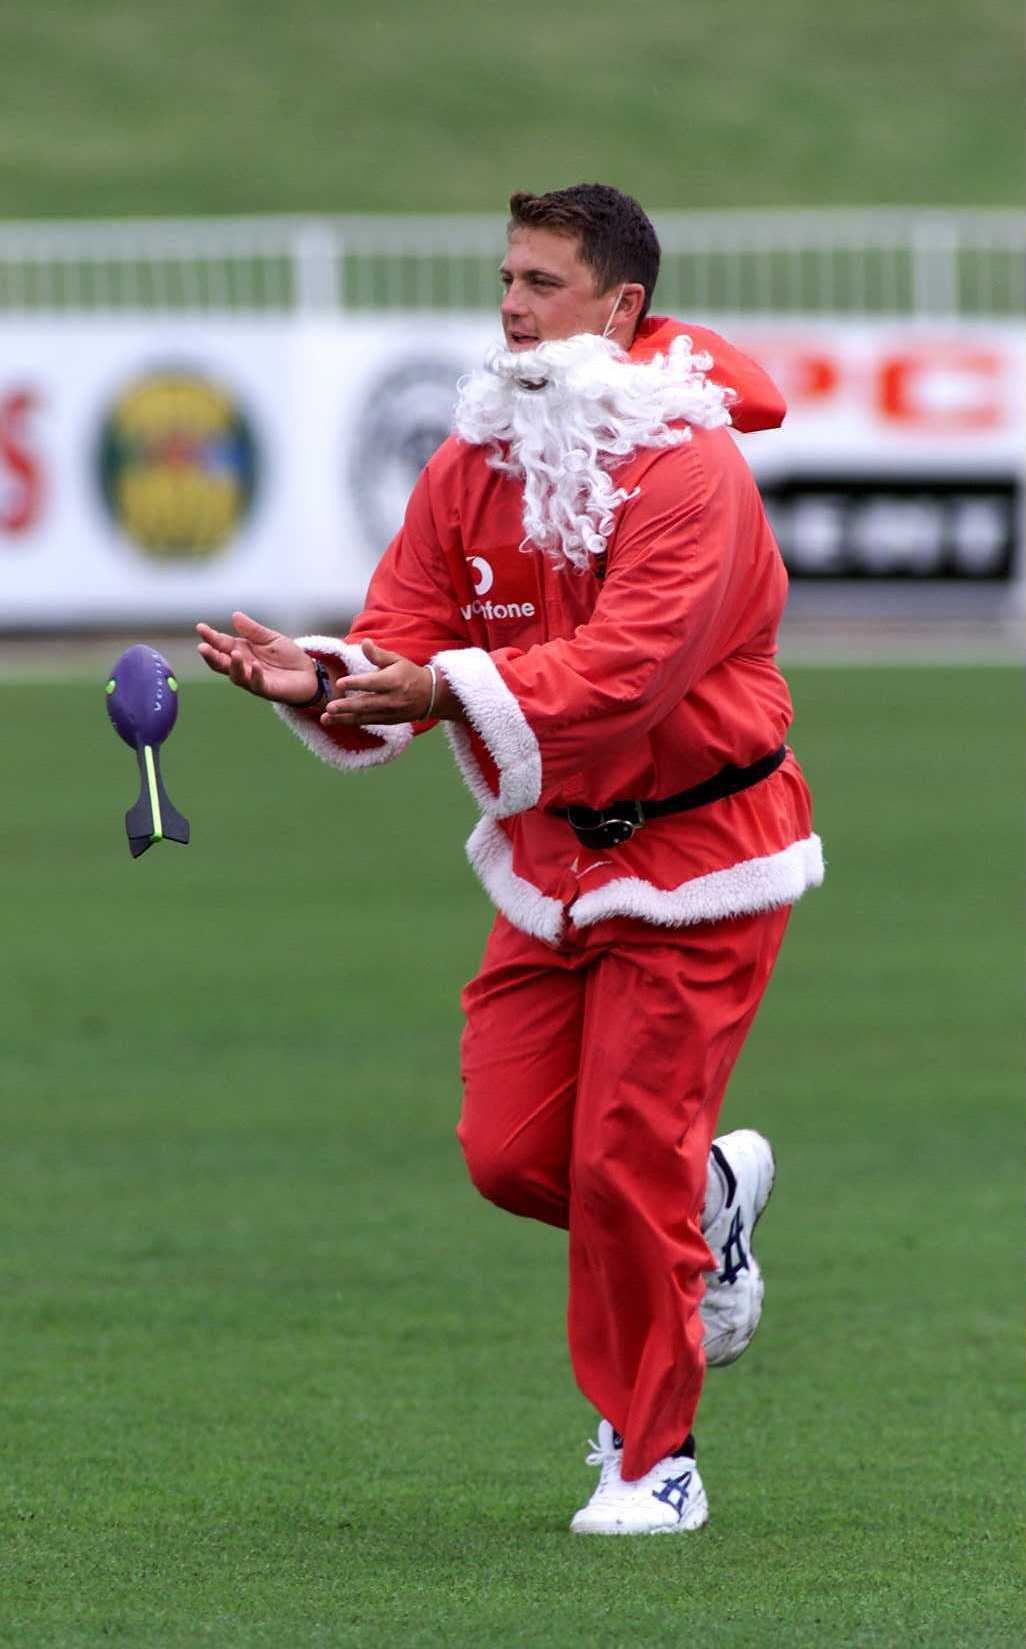 Cricketers Celebrating Christmas In Photos